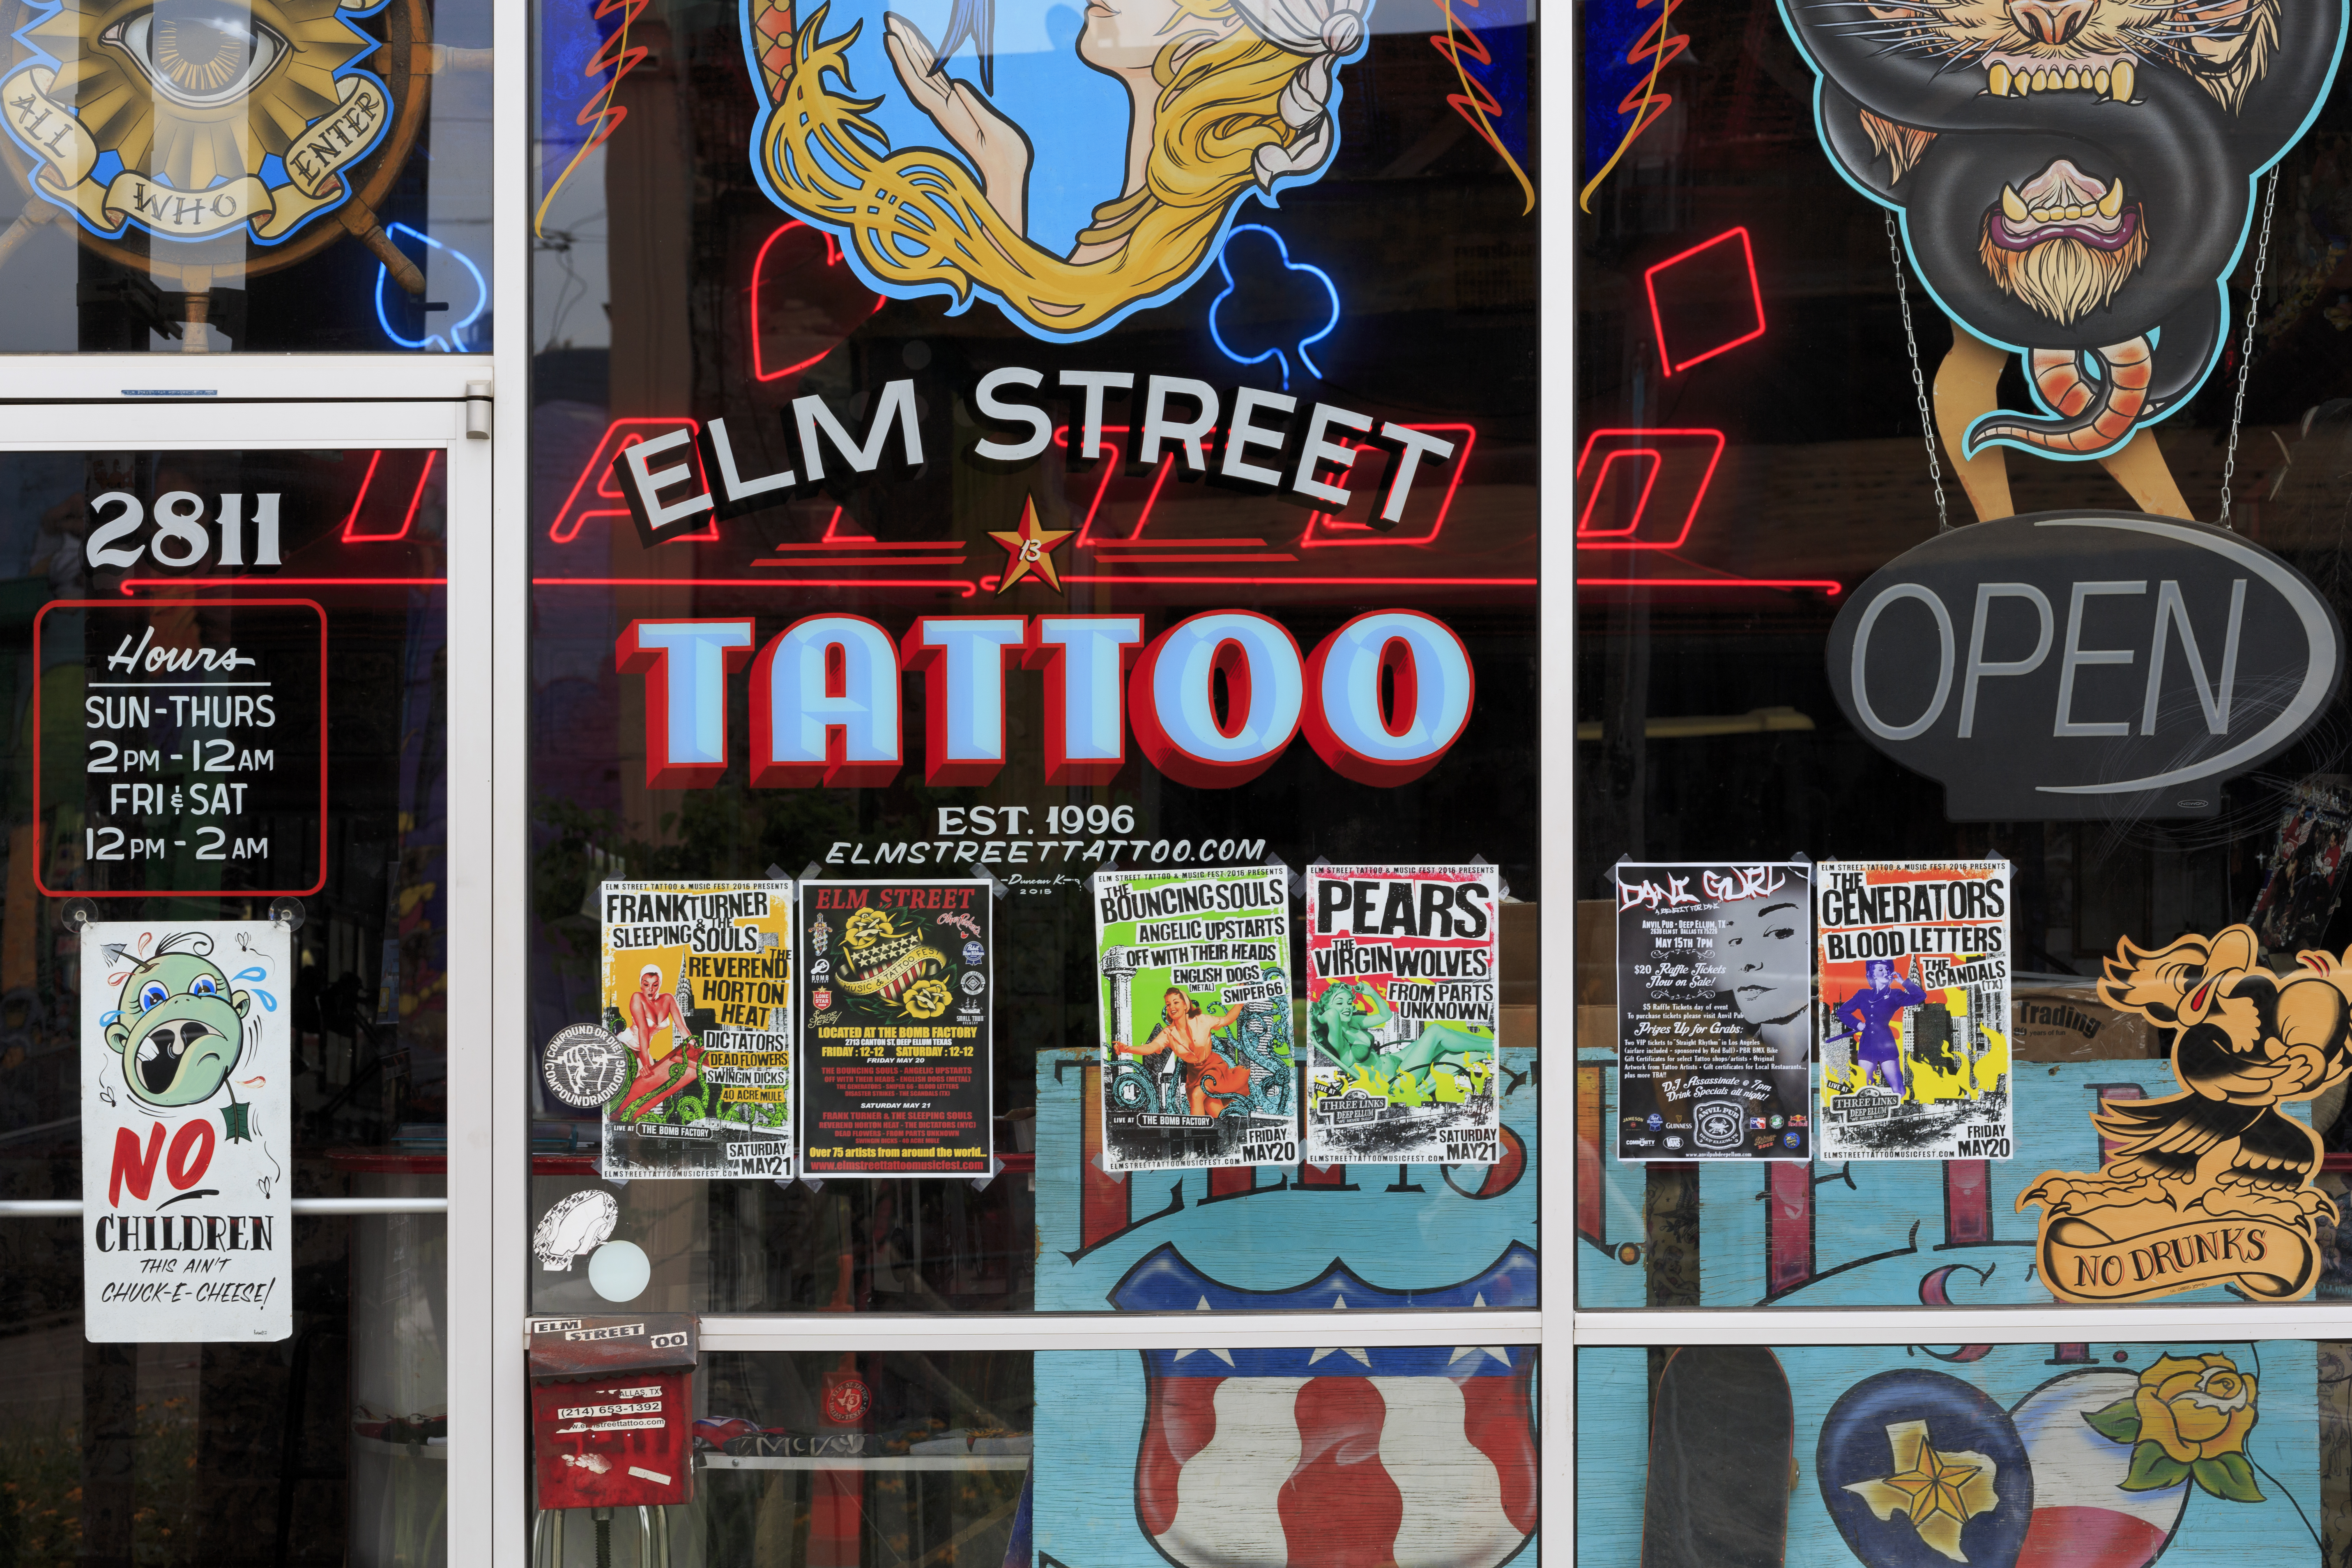 Friday The 13th Tattoo Deals Where To Find 13 Tattoos Money